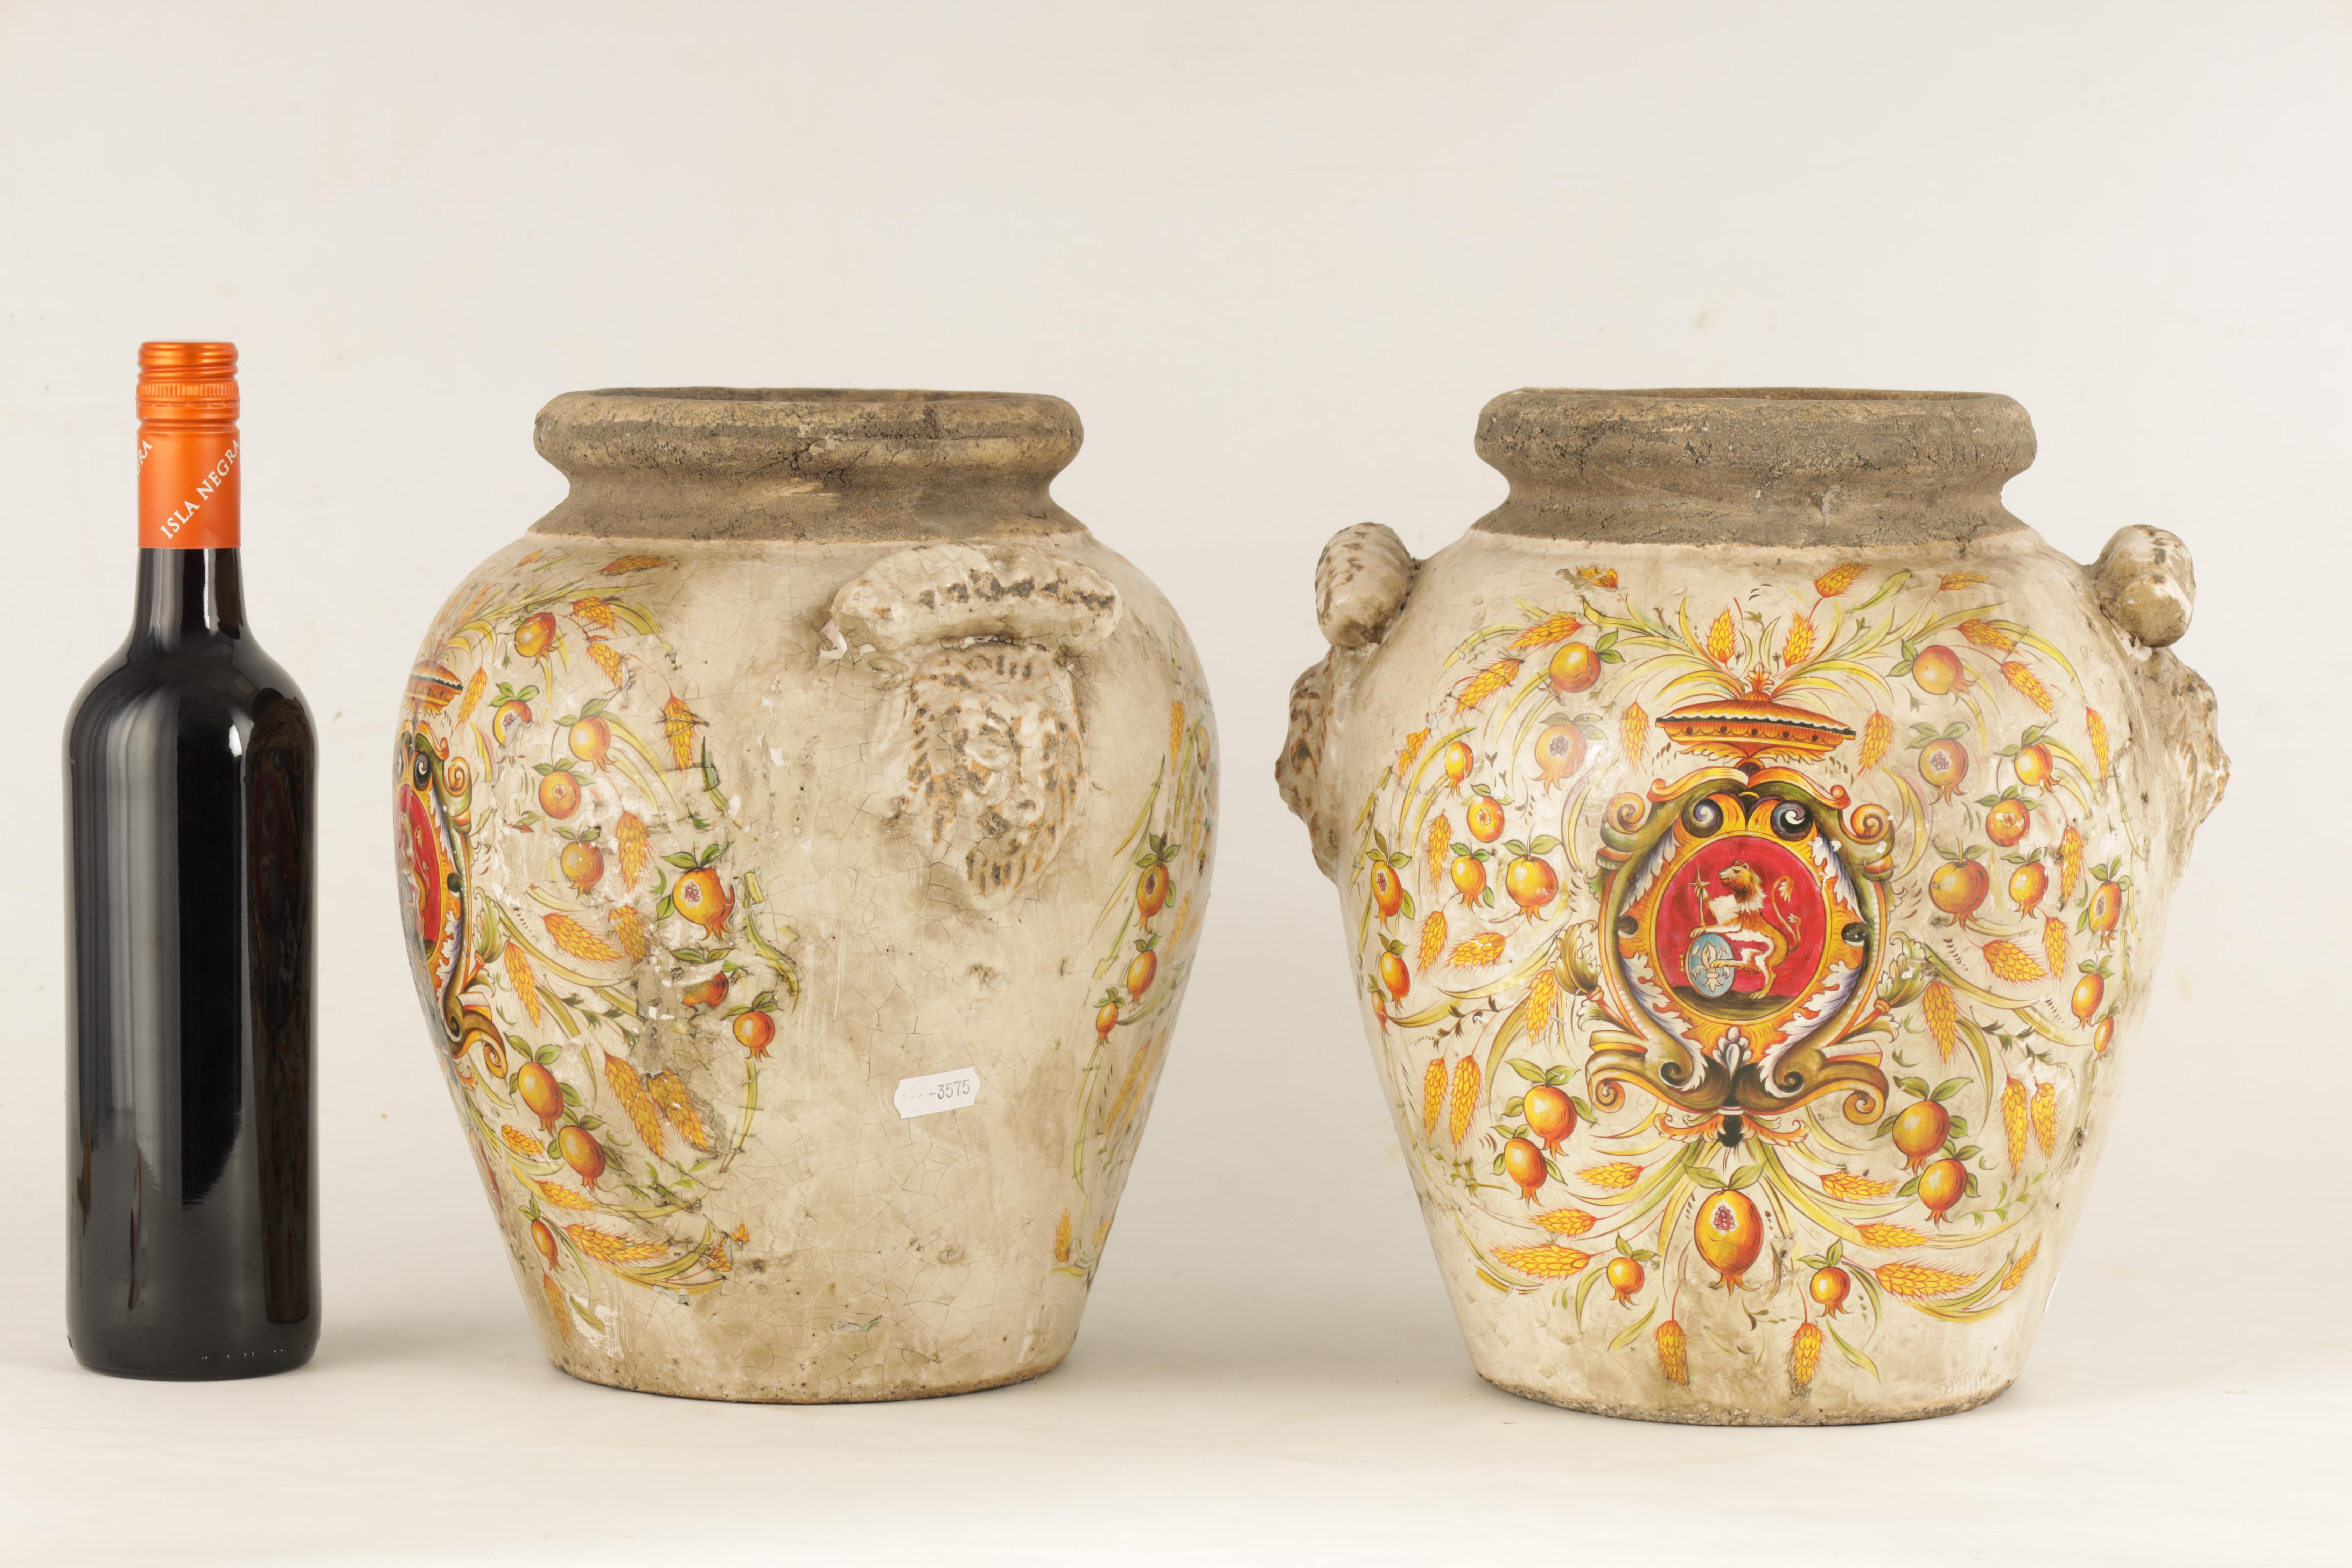 A PAIR OF EARLY ITALIAN EARTHENWARE ARMORIAL VASES with lion mask handles and painted armorials - Image 2 of 8